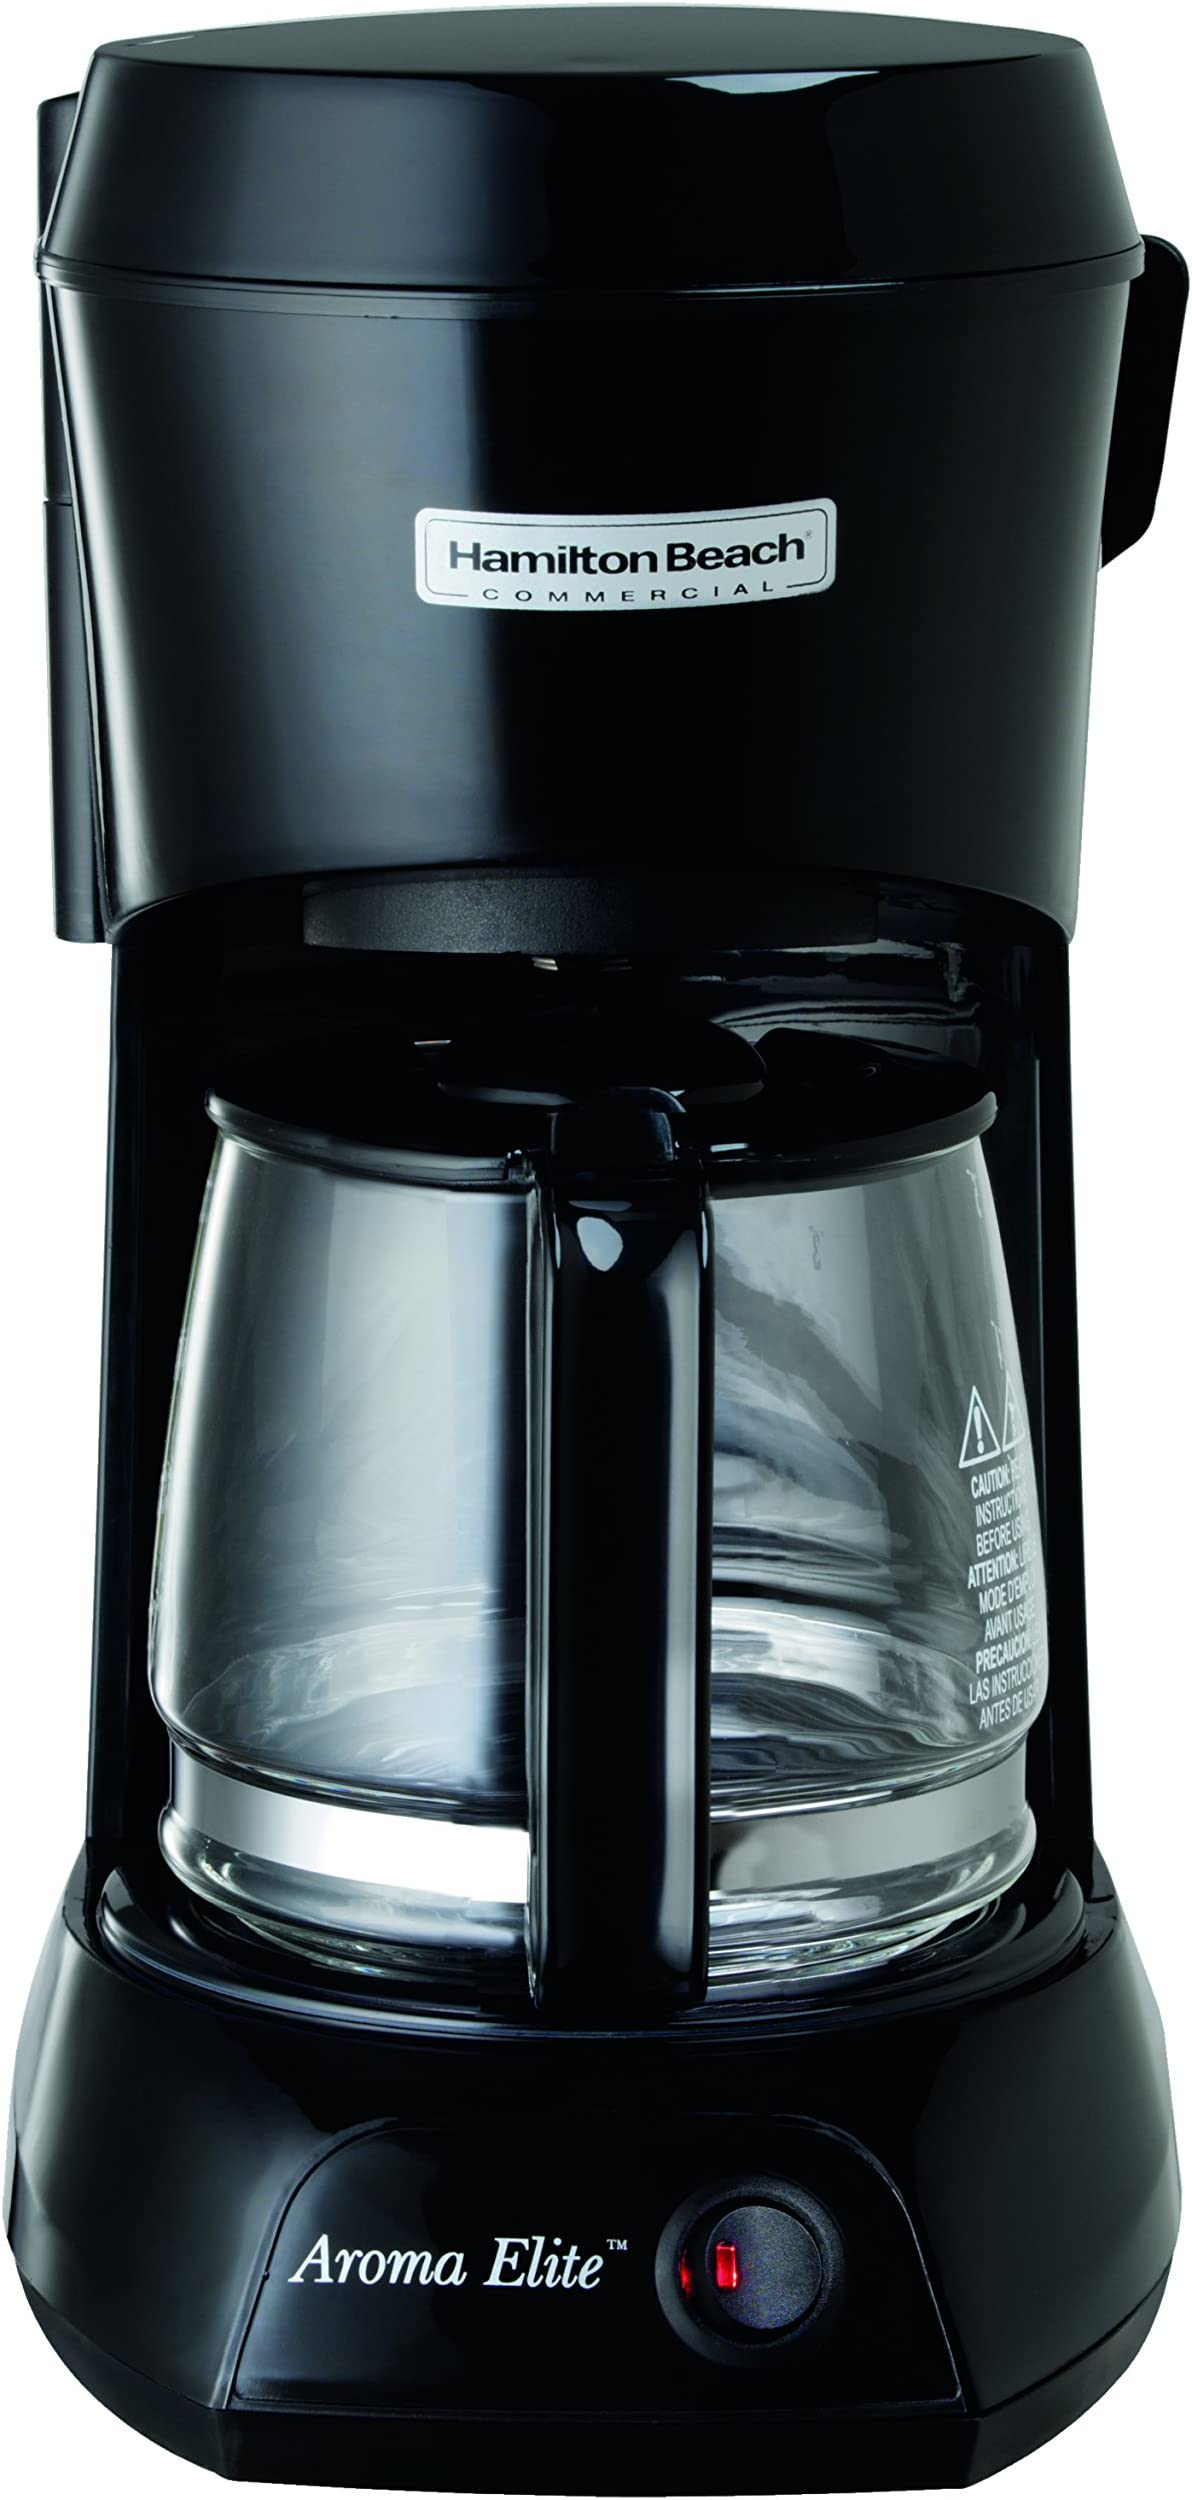 Hamilton Beach Commercial HDC500C Hotel & Hospitality 4 Cup Personal Coffeemaker, Black with Glass Carafe